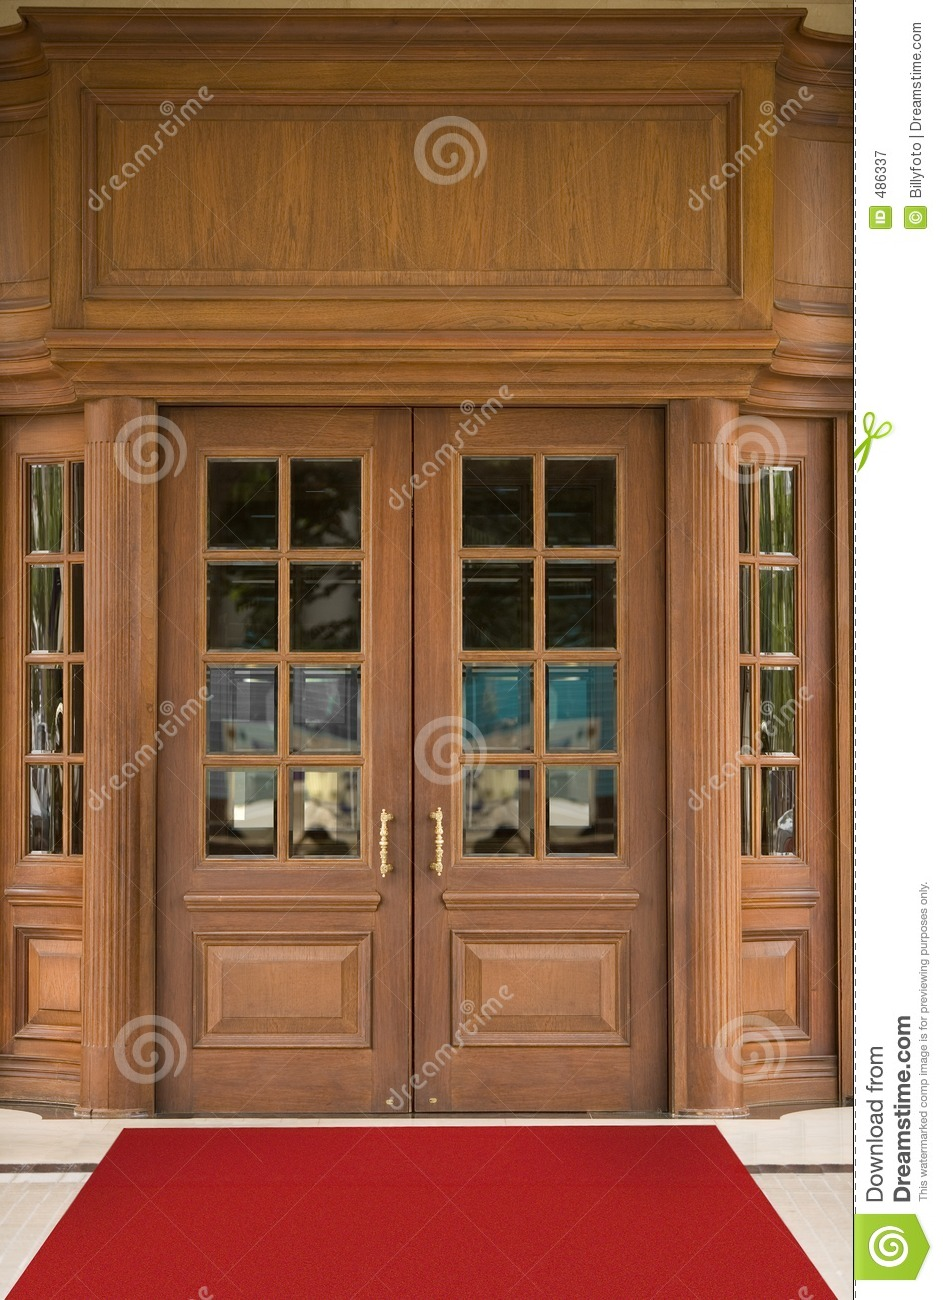 Hotel Entrance Doors : Hotel door royalty free stock photography image